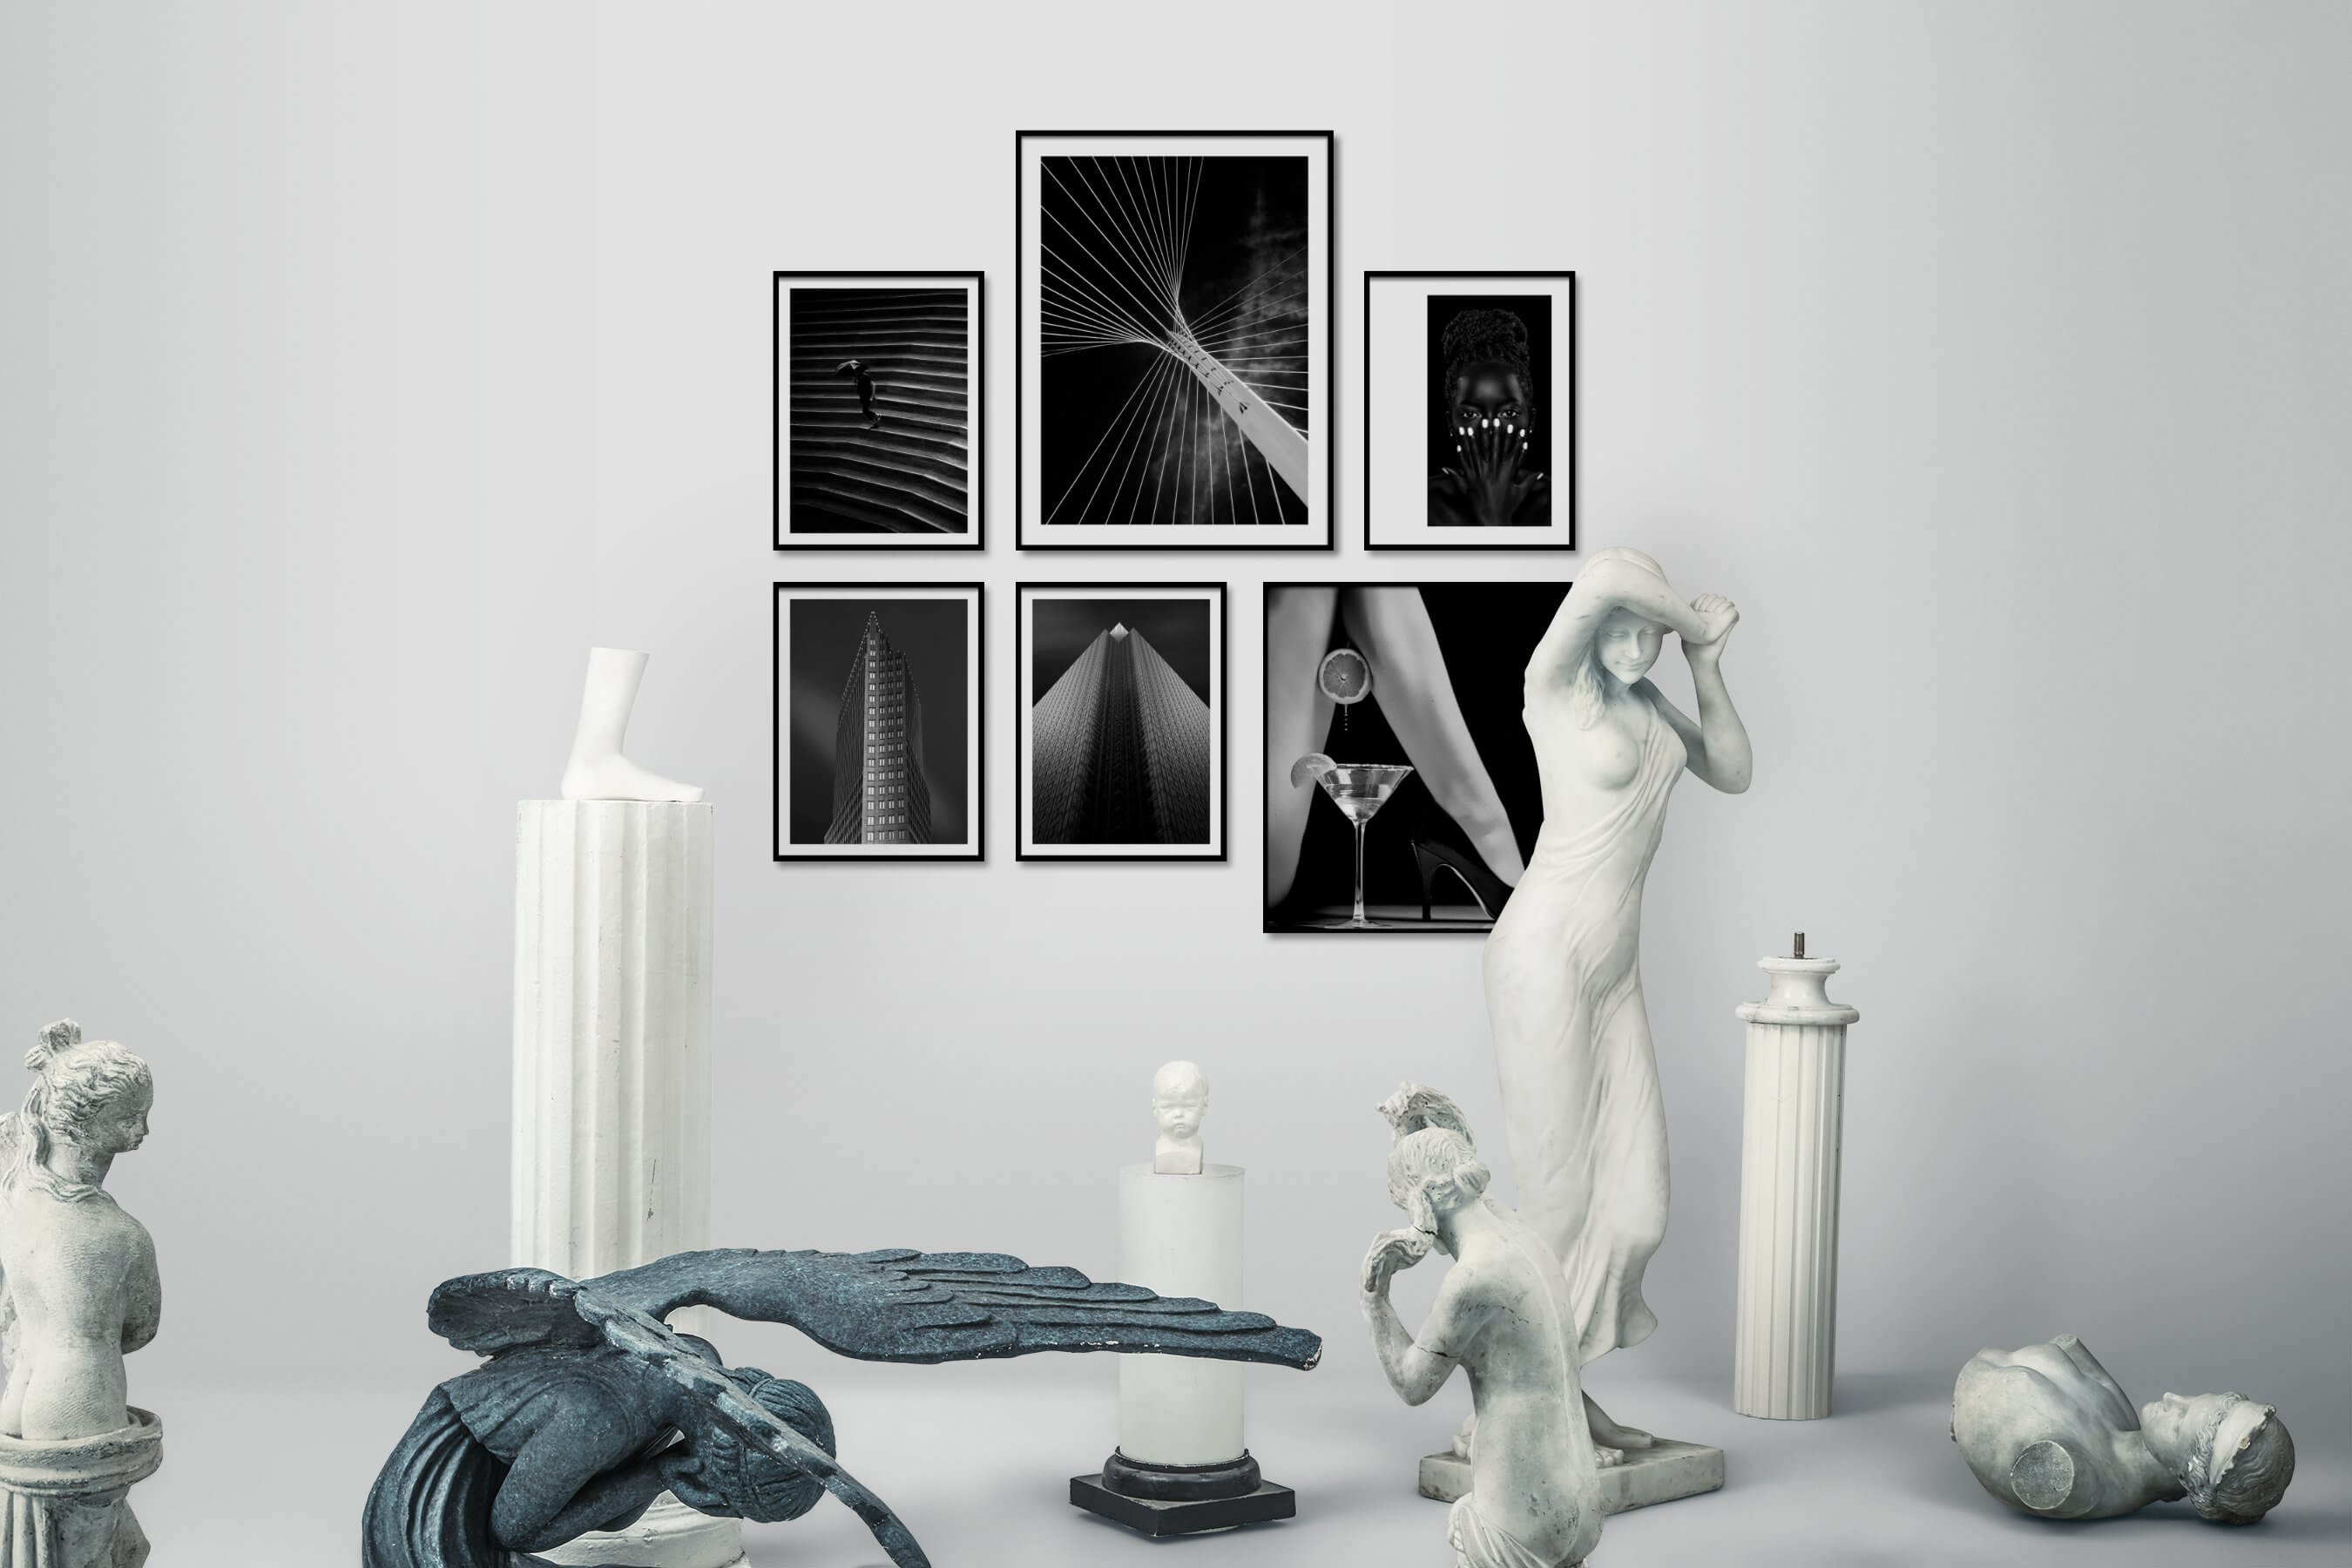 Gallery wall idea with six framed pictures arranged on a wall depicting Black & White, For the Moderate, For the Minimalist, City Life, and Fashion & Beauty